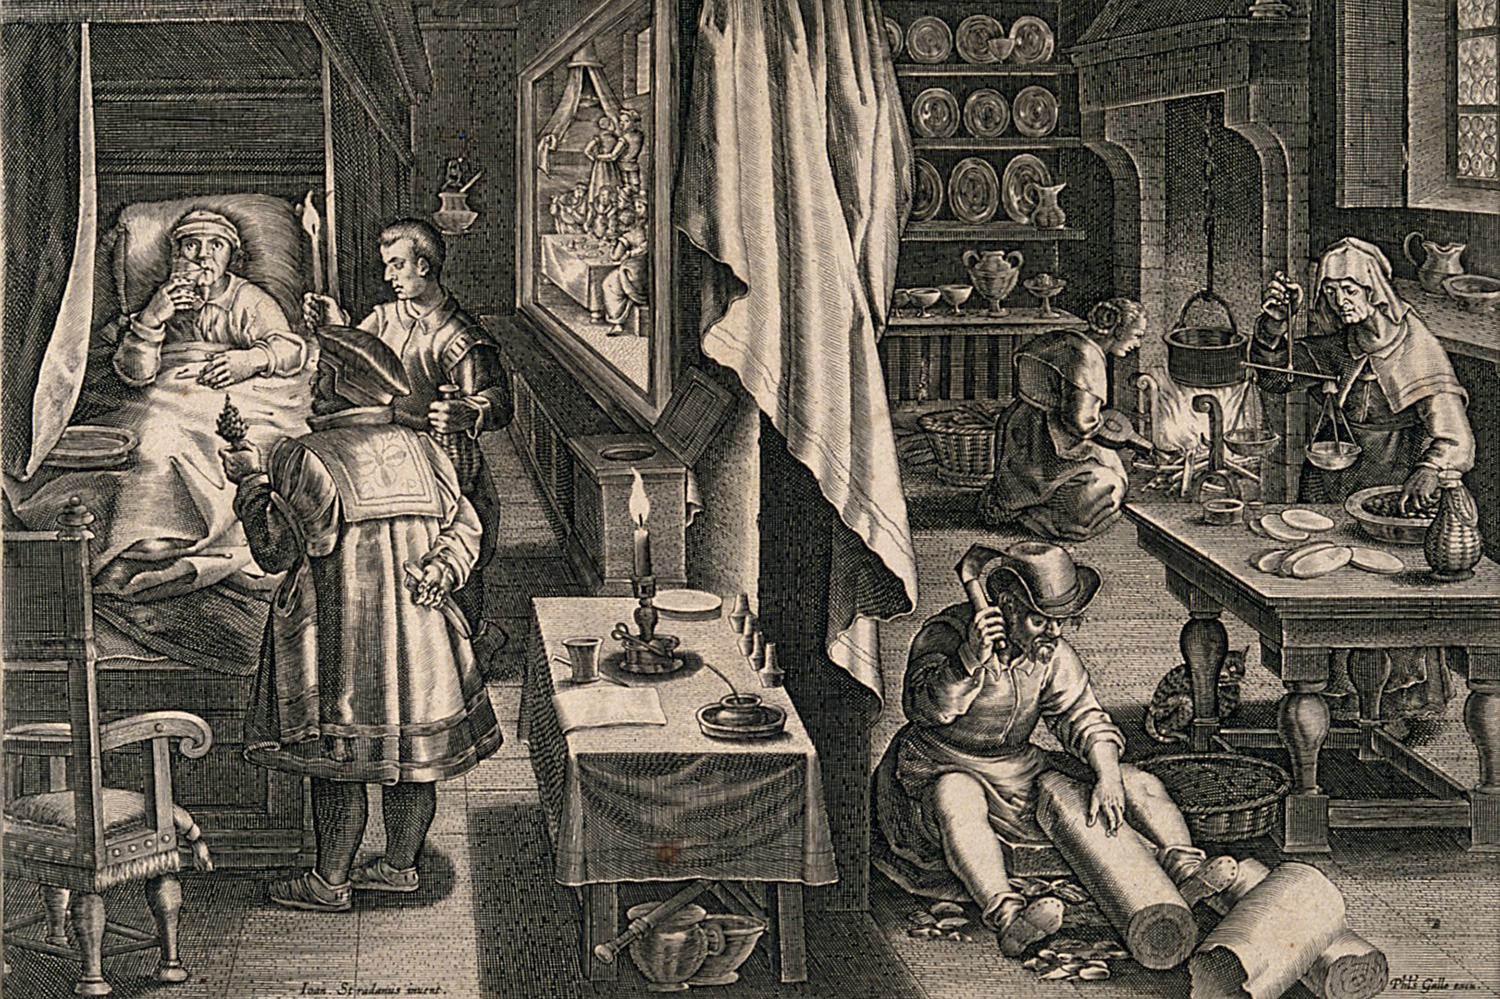 The engraving shows a busy scene in a small room, with domestic activities taking place on one side of the image and the patient being tended to by a doctor on the other.